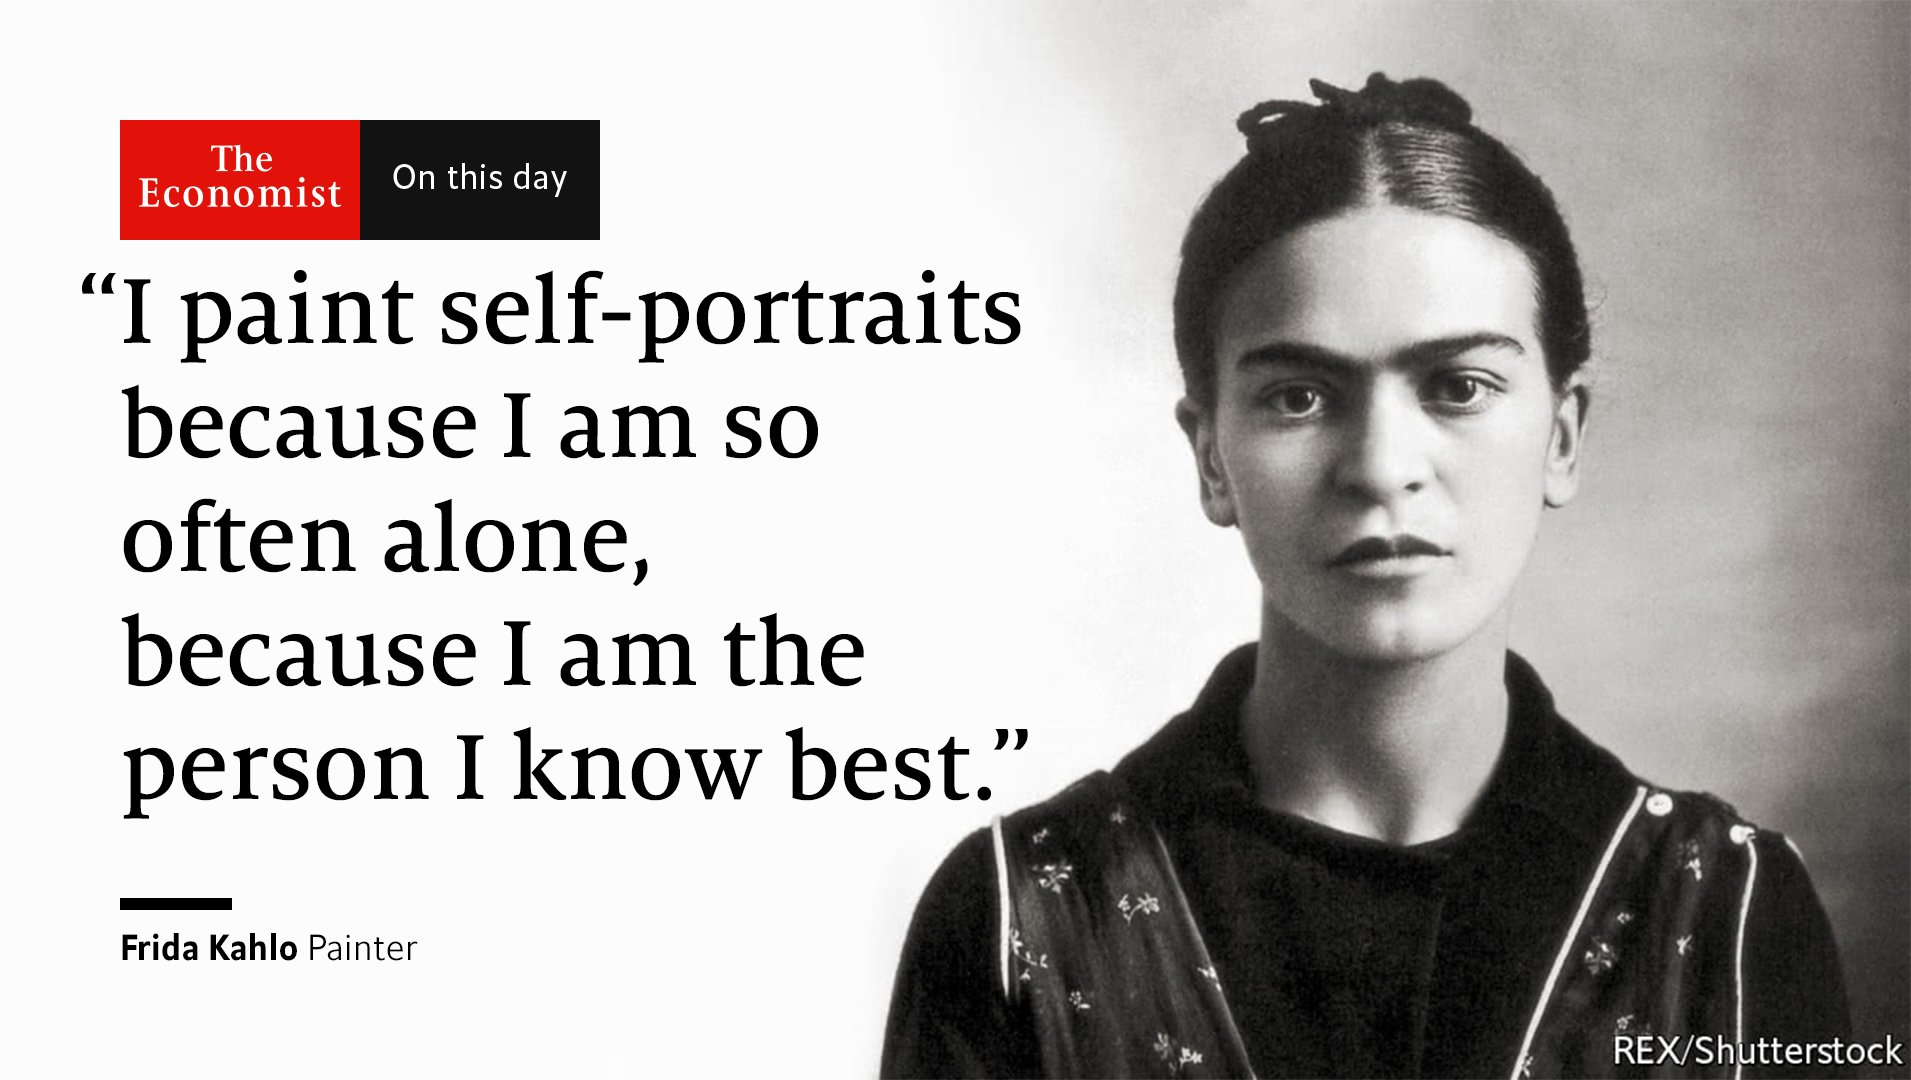 An artist who mostly depicts herself and her many traumas, Frida Kahlo was born #OnThisDay 1907 https://t.co/uCf7OYBxWK https://t.co/MHBO0qC2al